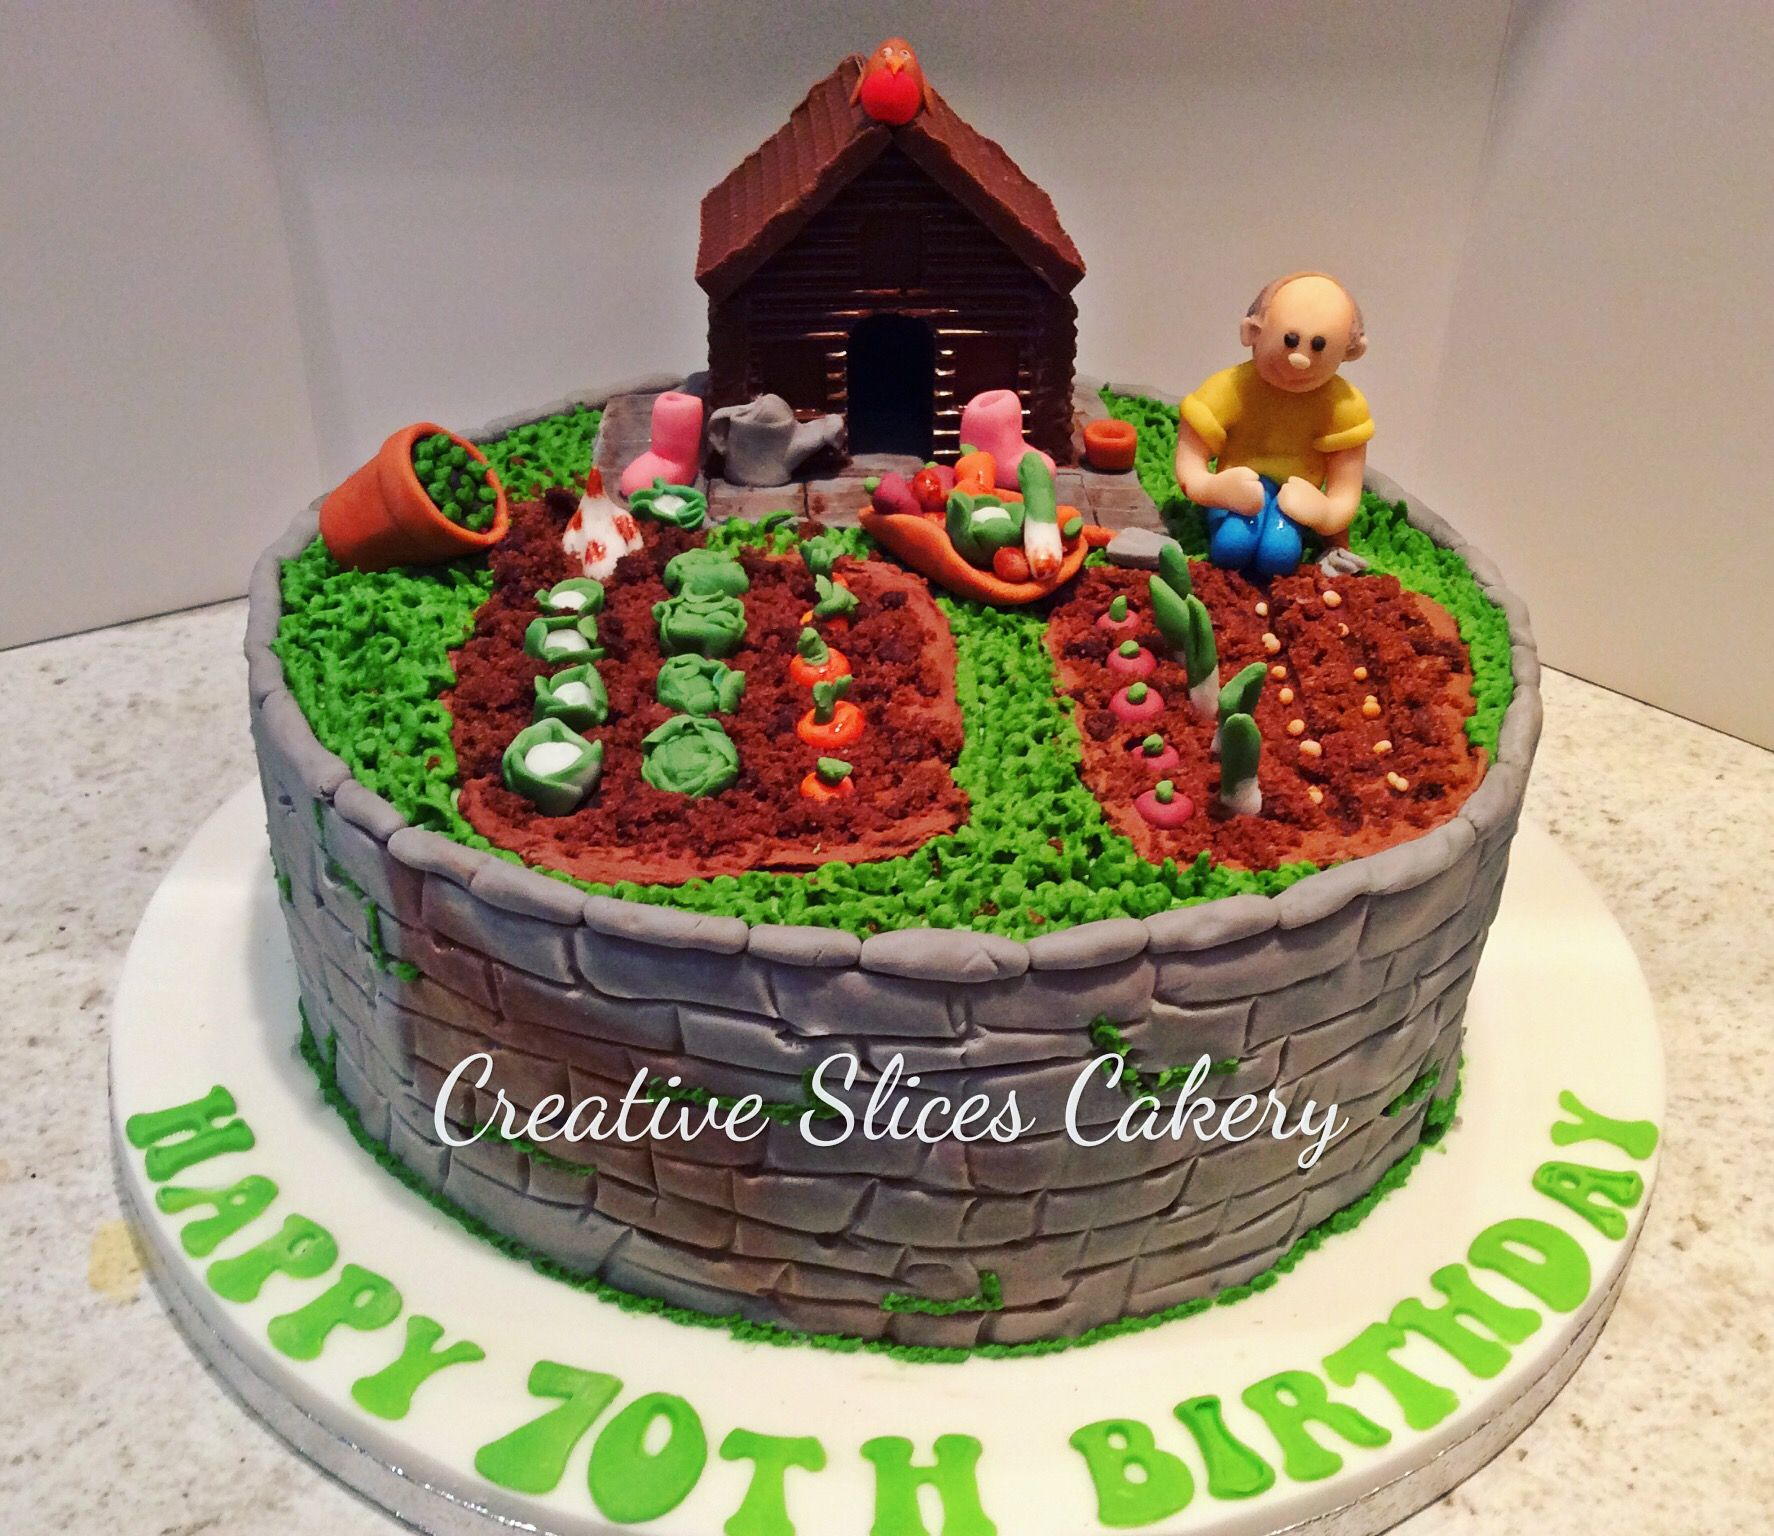 Loved making this allotment cake x